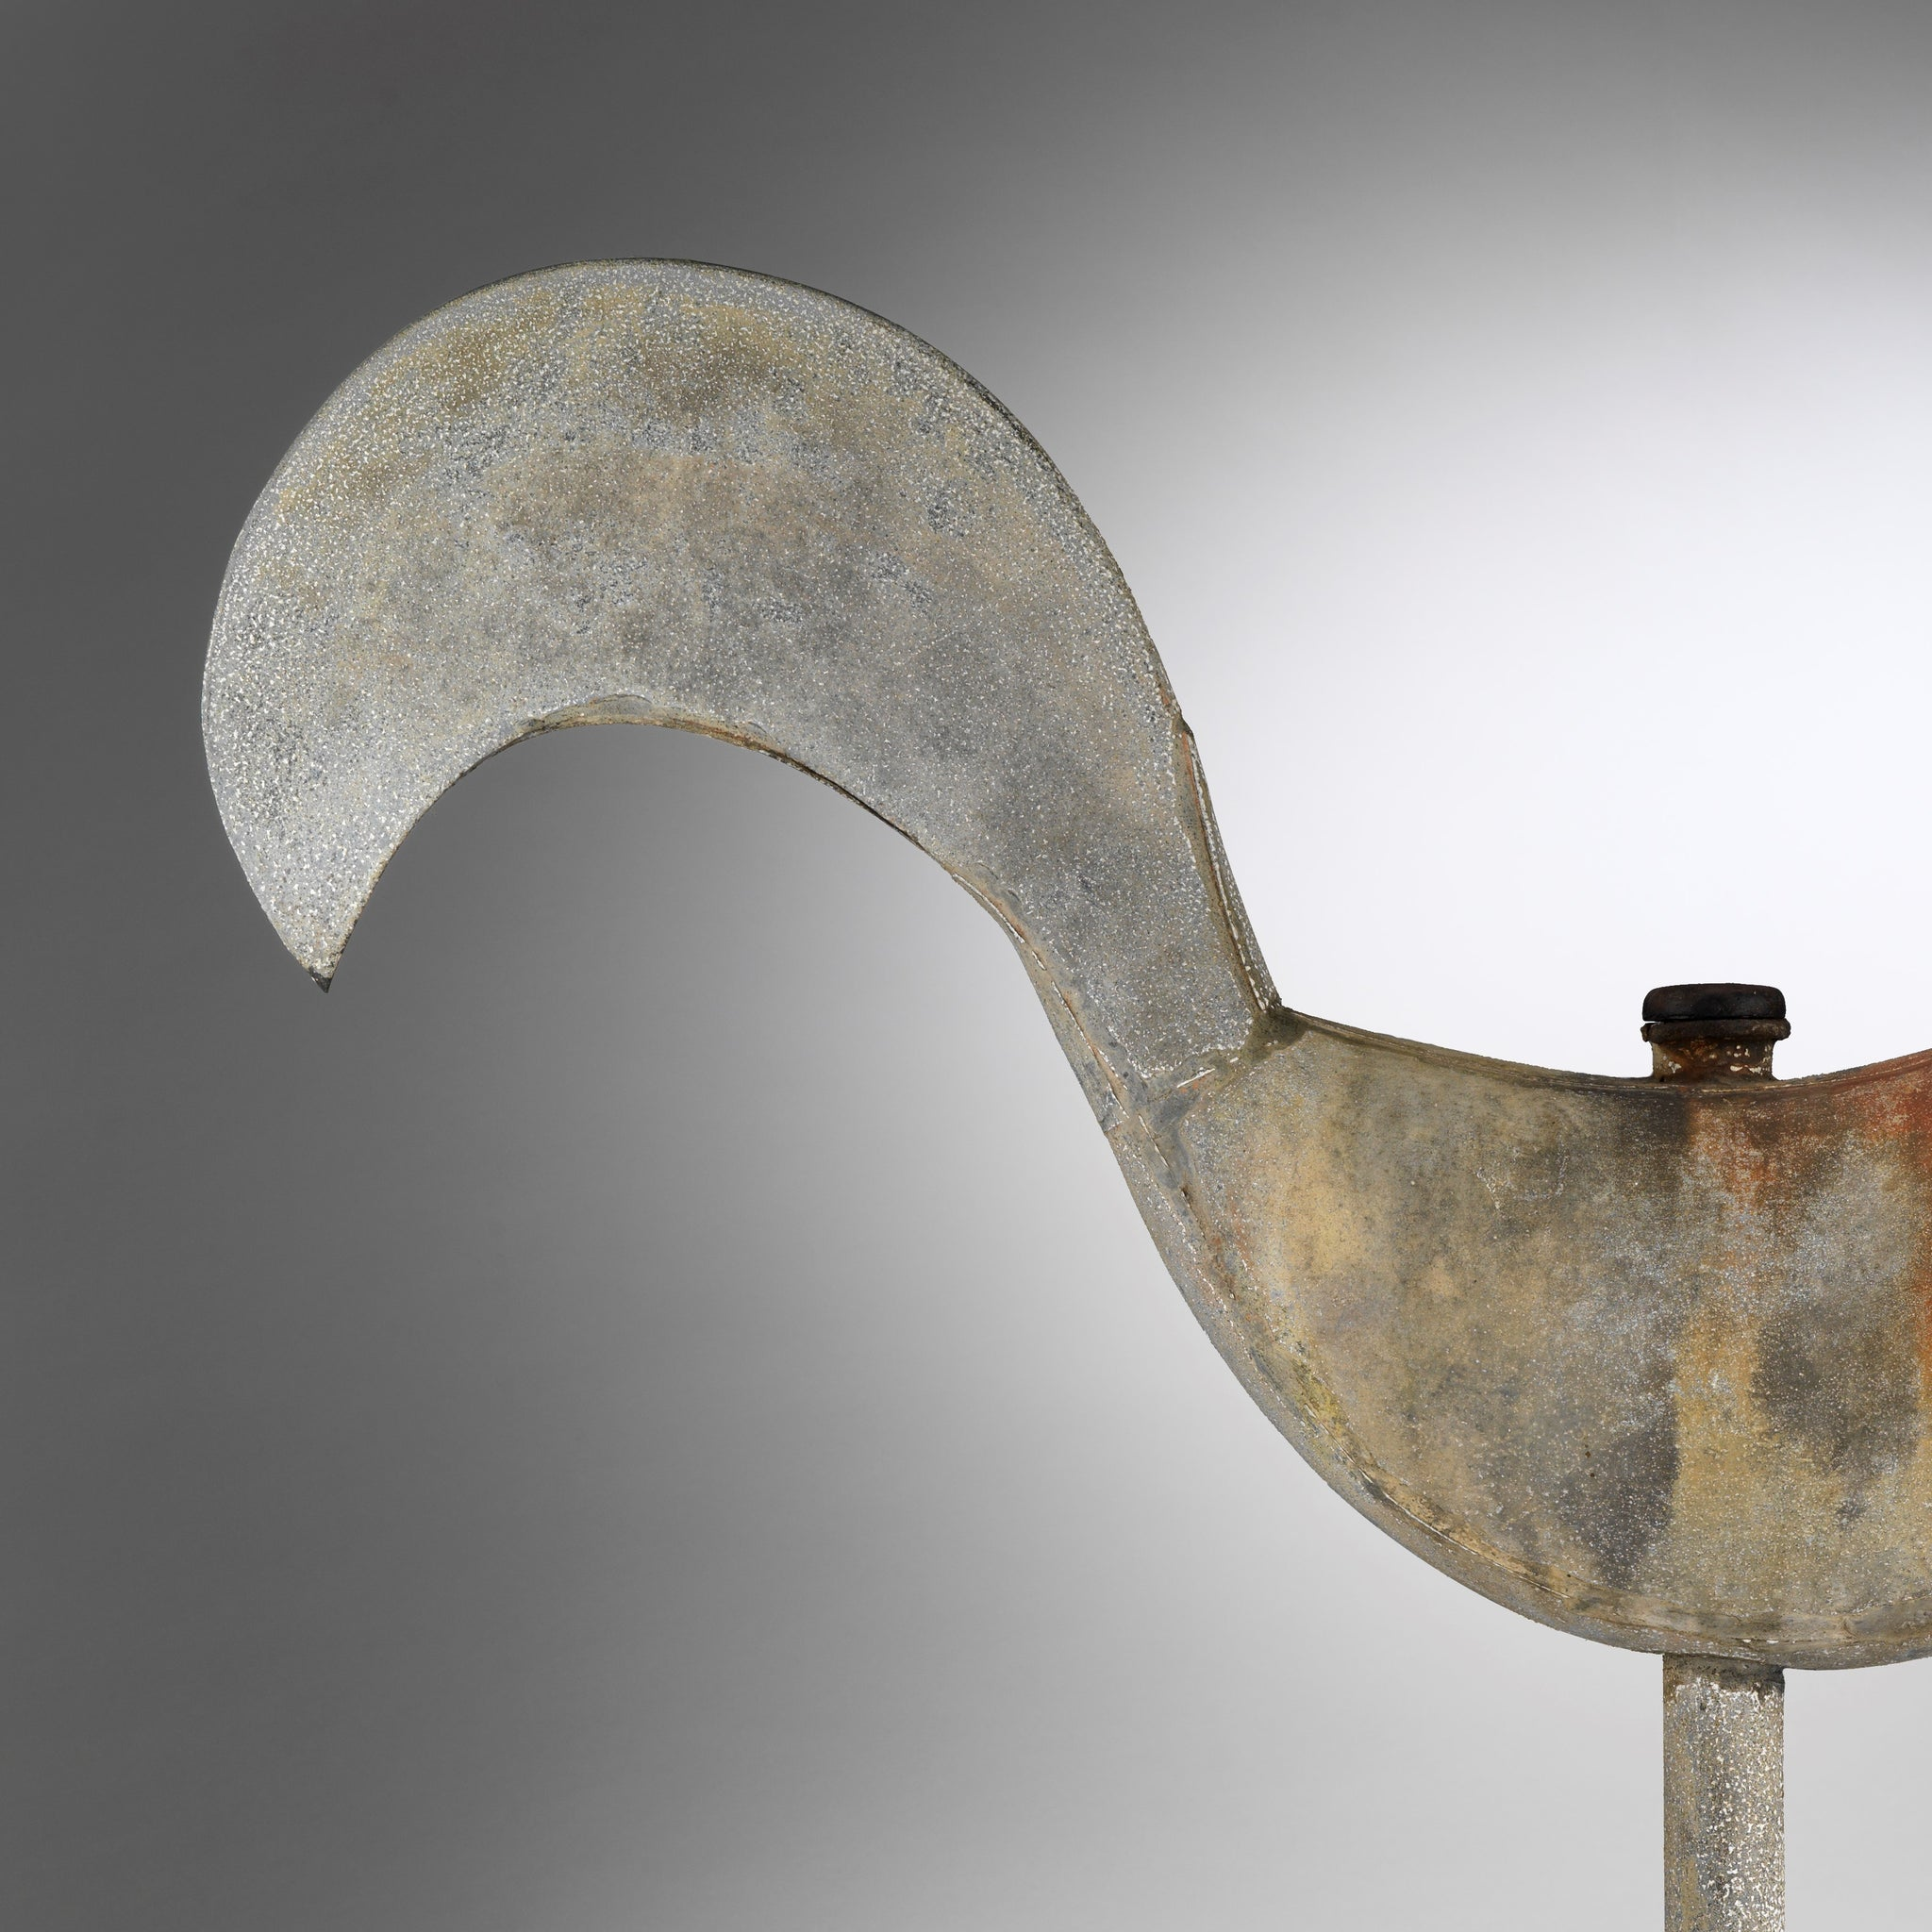 Unusual Full-Bodied Primitive Cockerel Weathervane